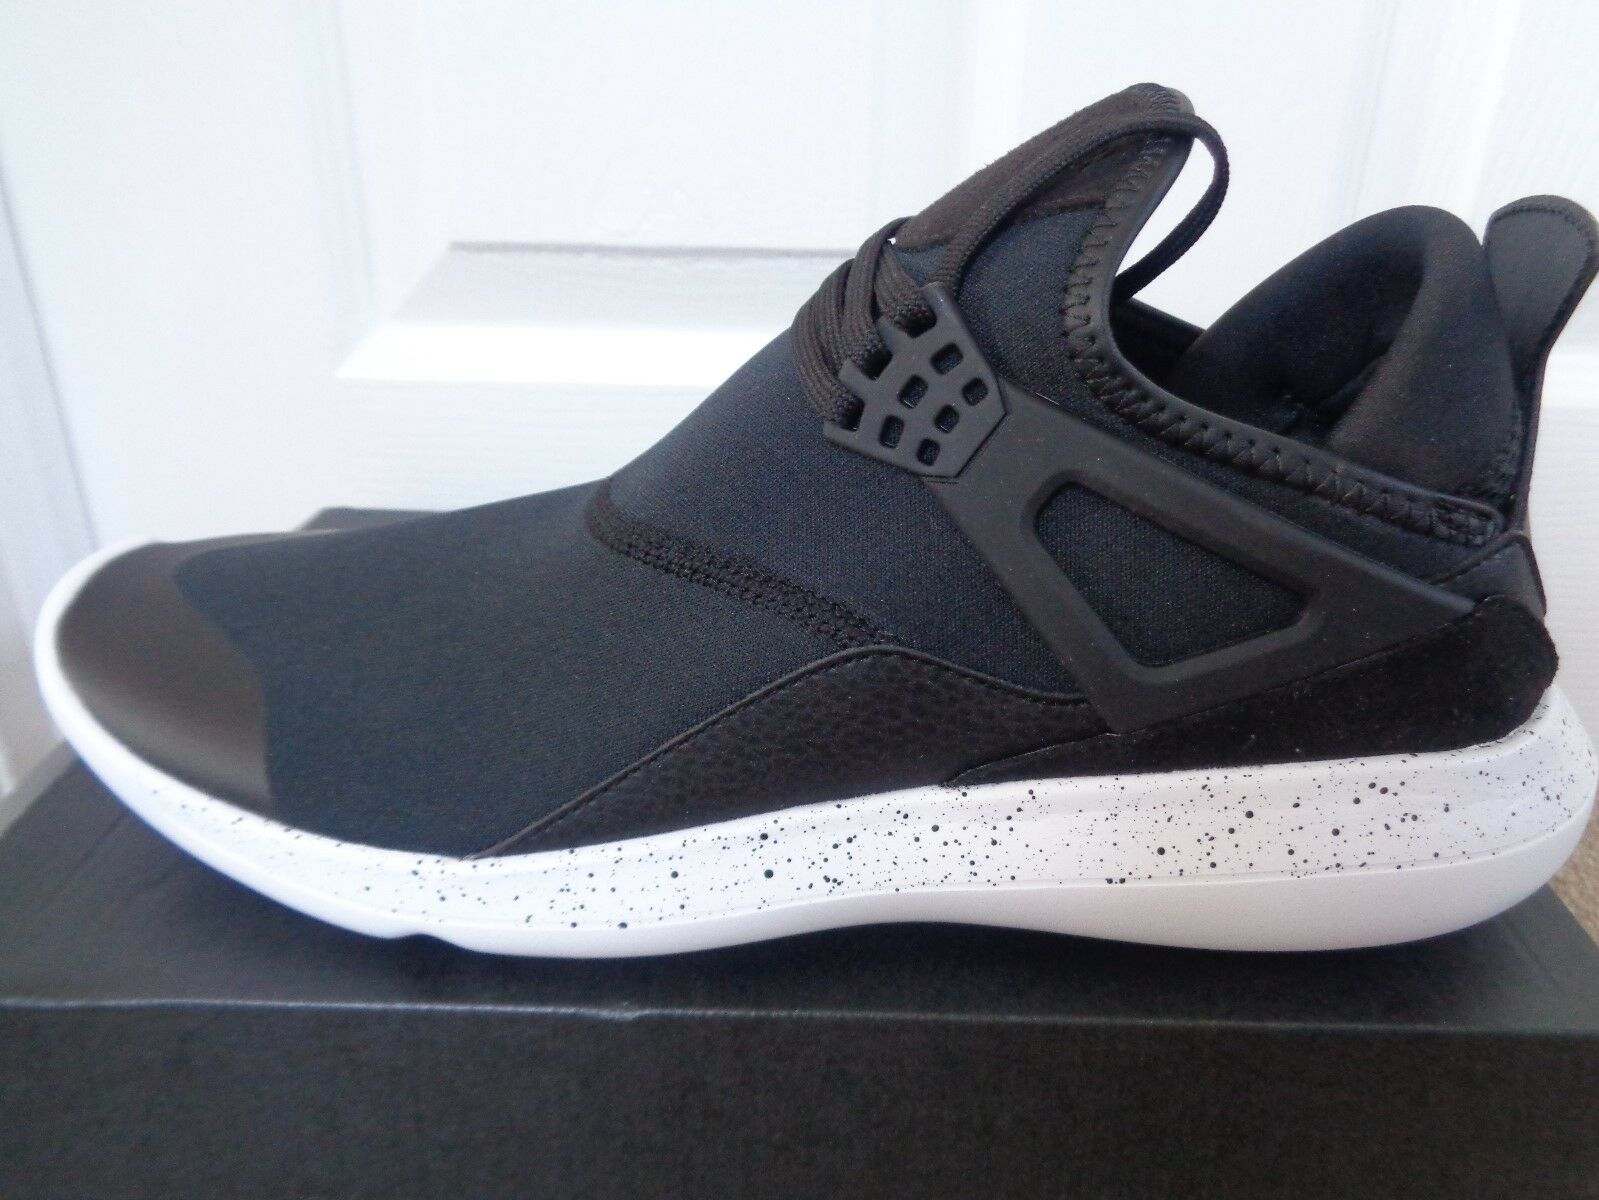 c0f9df19e73c Nike Air Jordan Fly 89 IV 4 Black White Men Lifestyle Shoes SNEAKERS ...